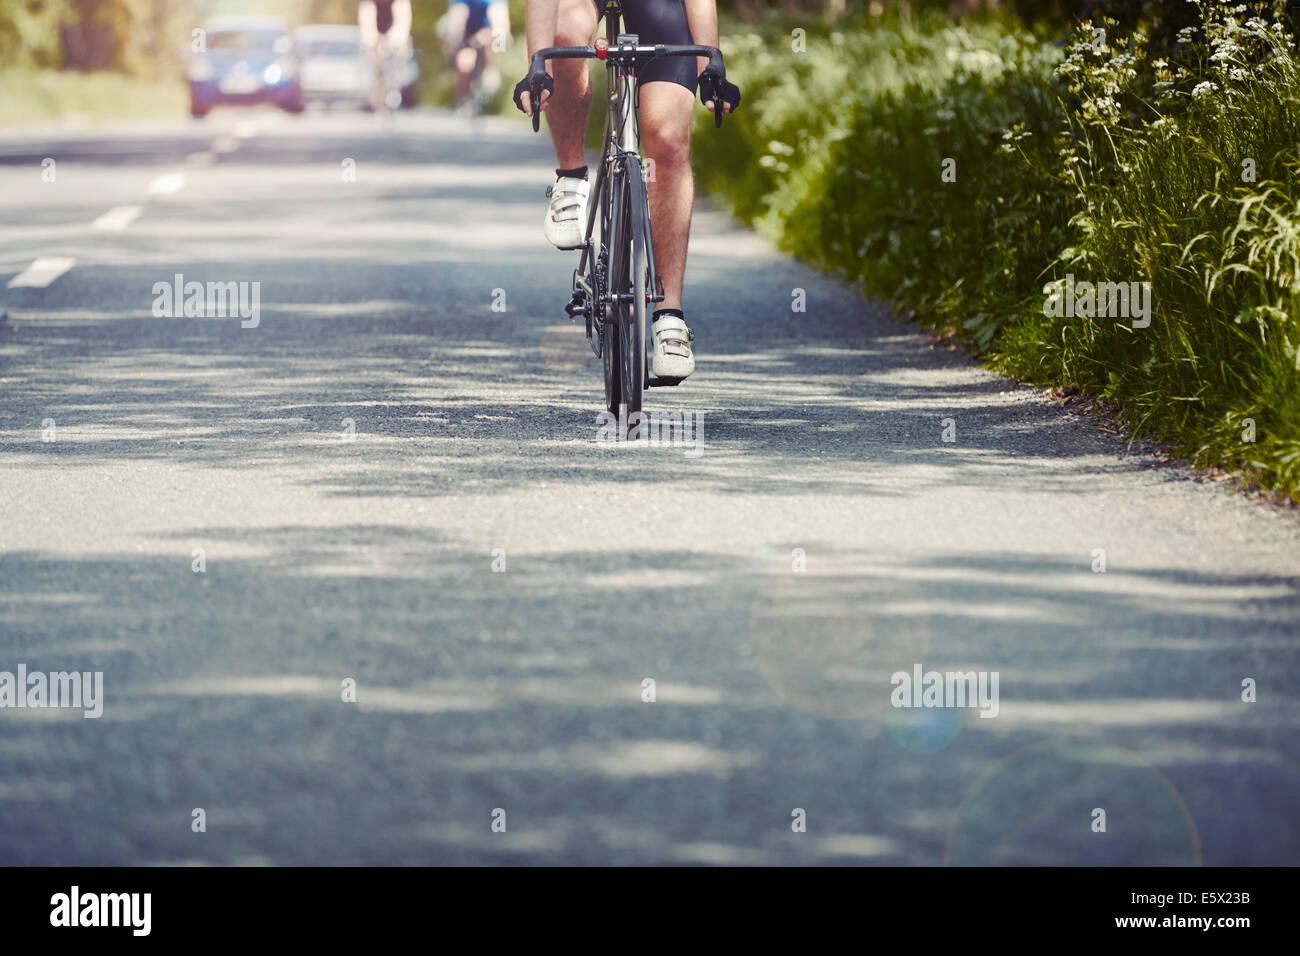 Cyclists riding on single carriageway, Cotswolds, UK Stock Photo